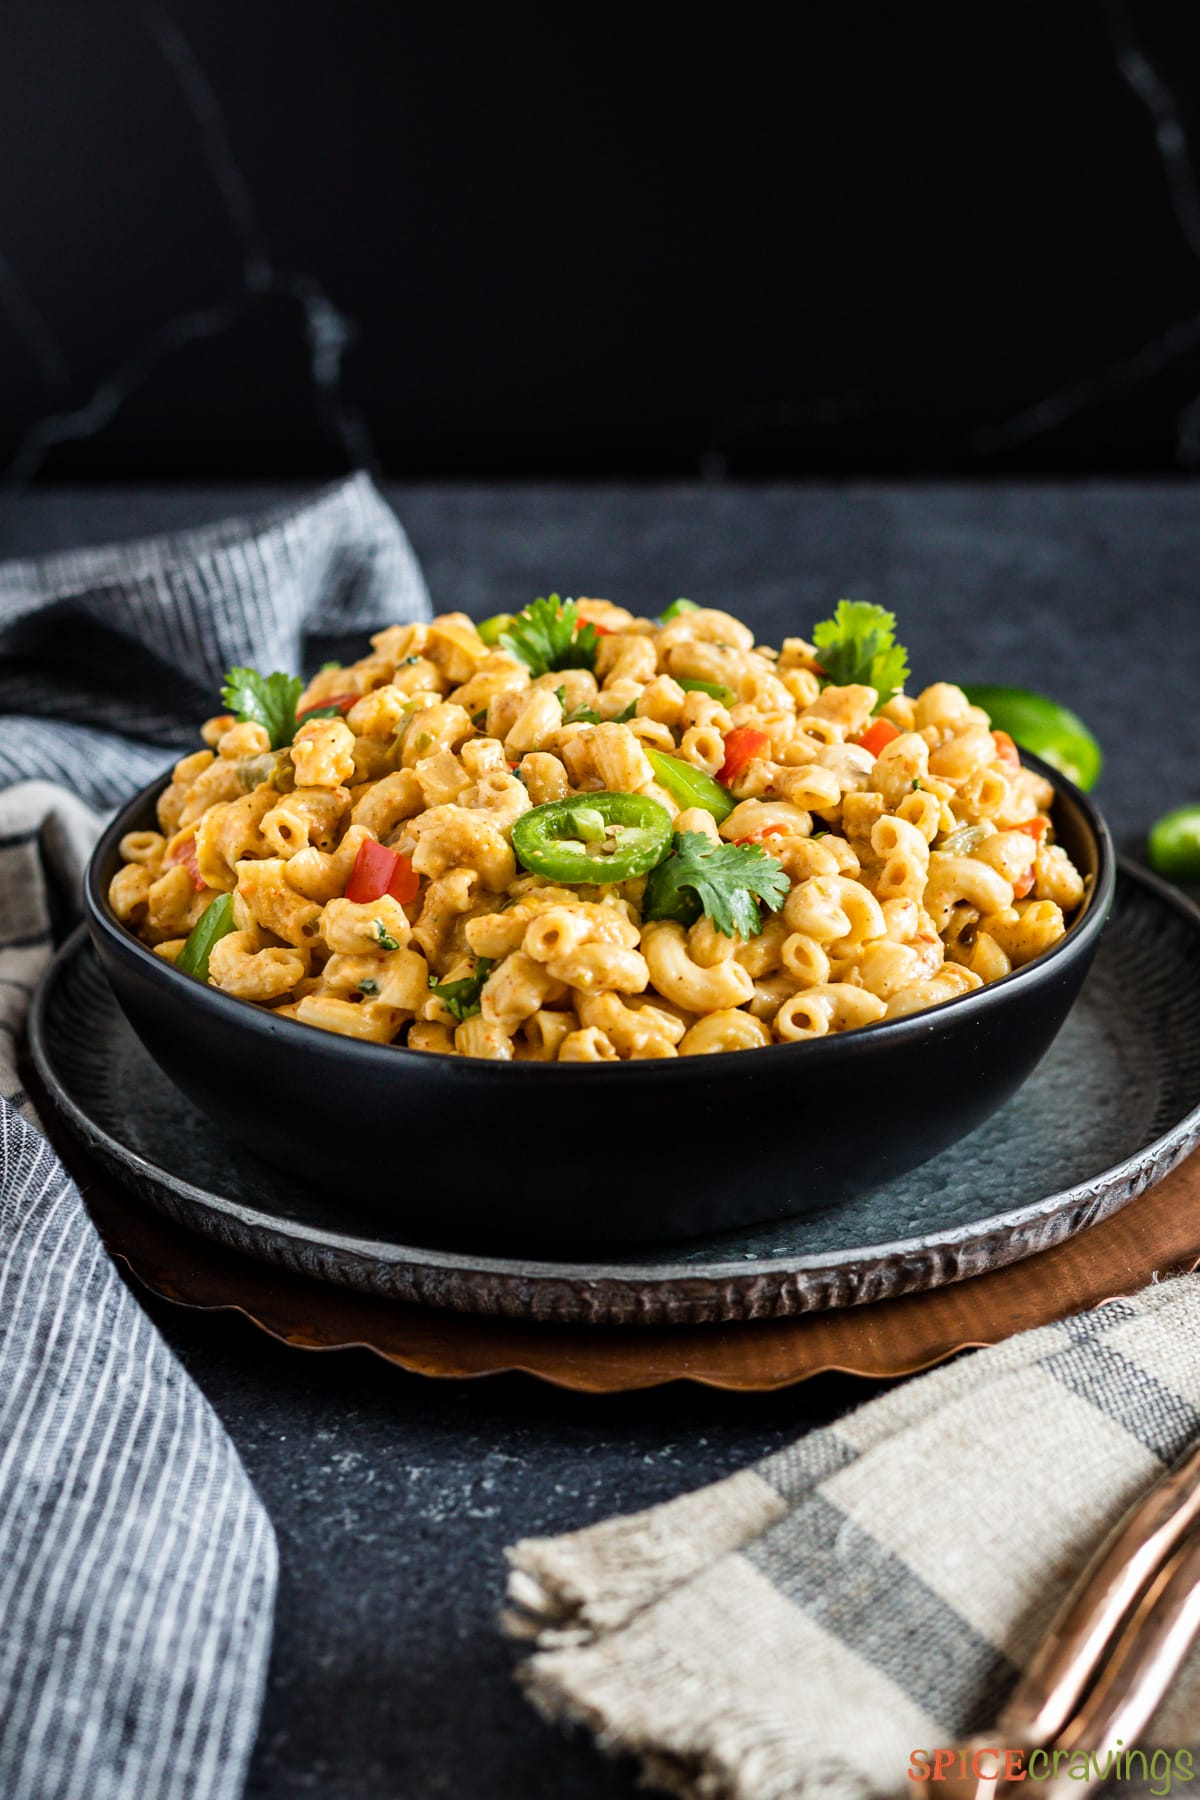 A bowl of spicy macaroni and cheese topped with veggies